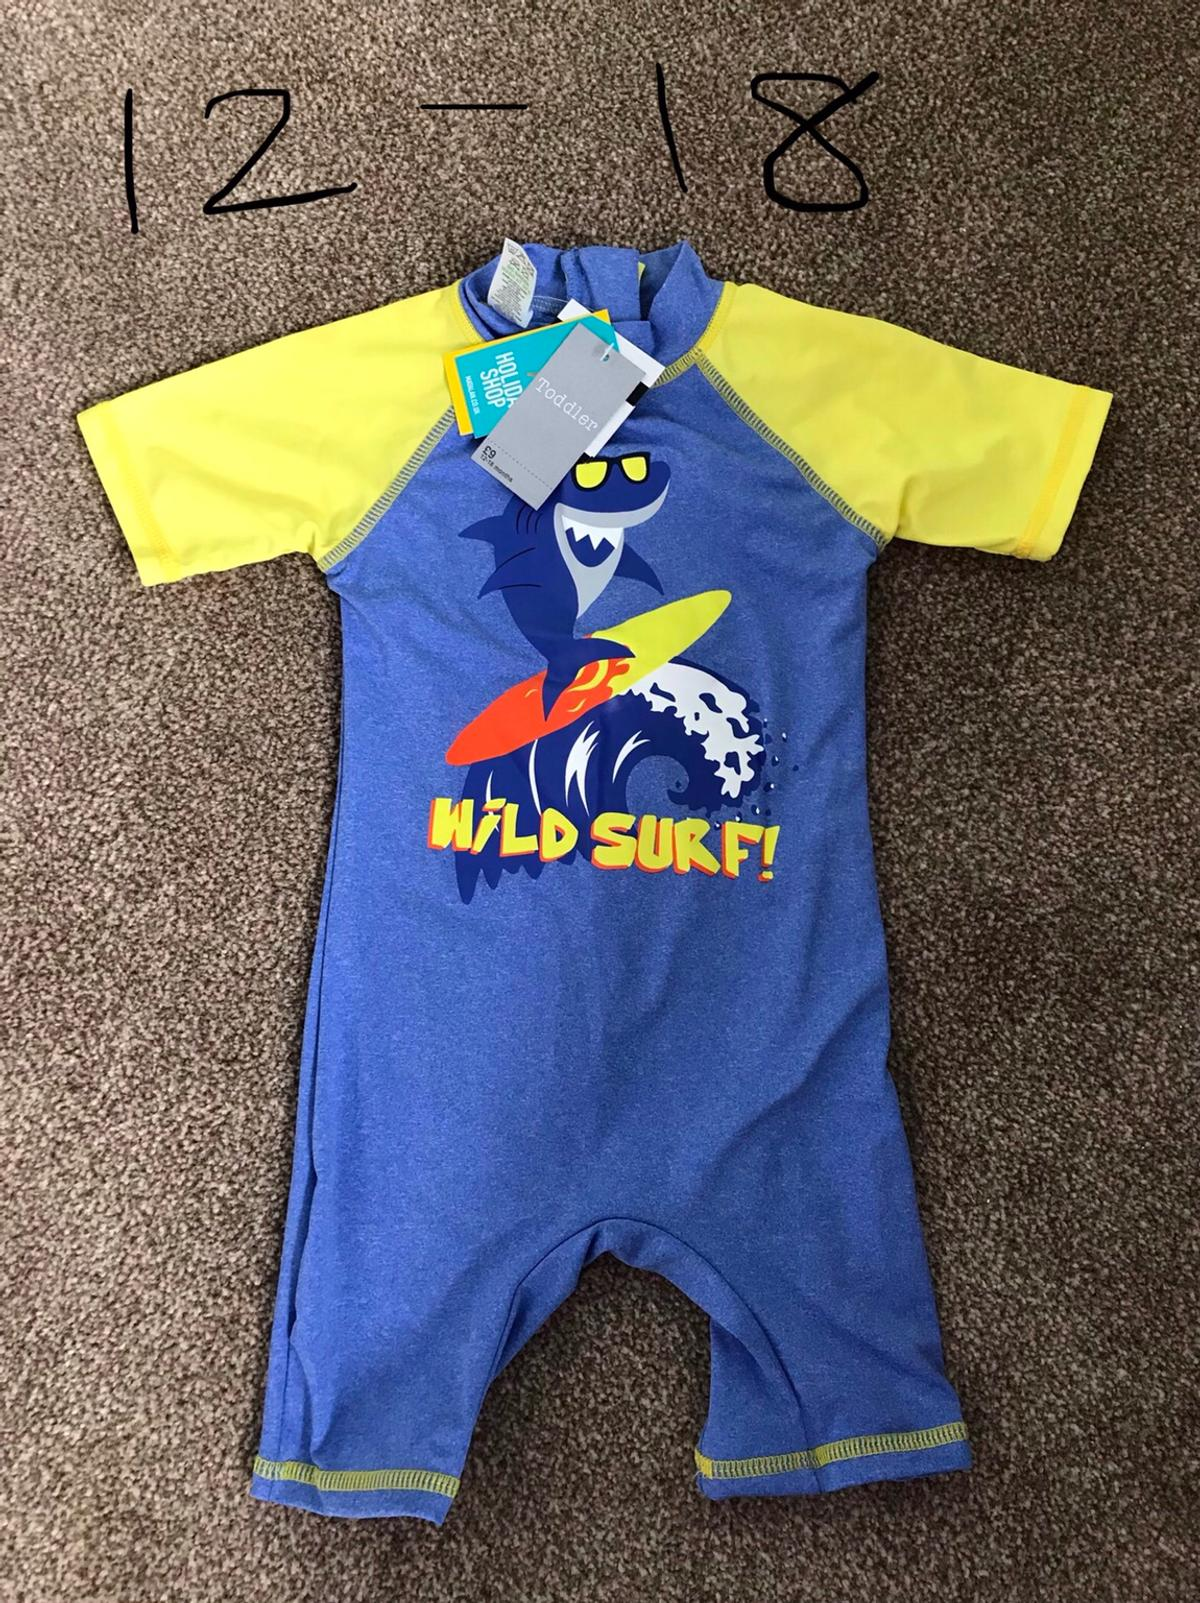 53f24e5bed Boys 12-18 months swimsuit in DY11 Wyre Forest for £8.00 for sale ...